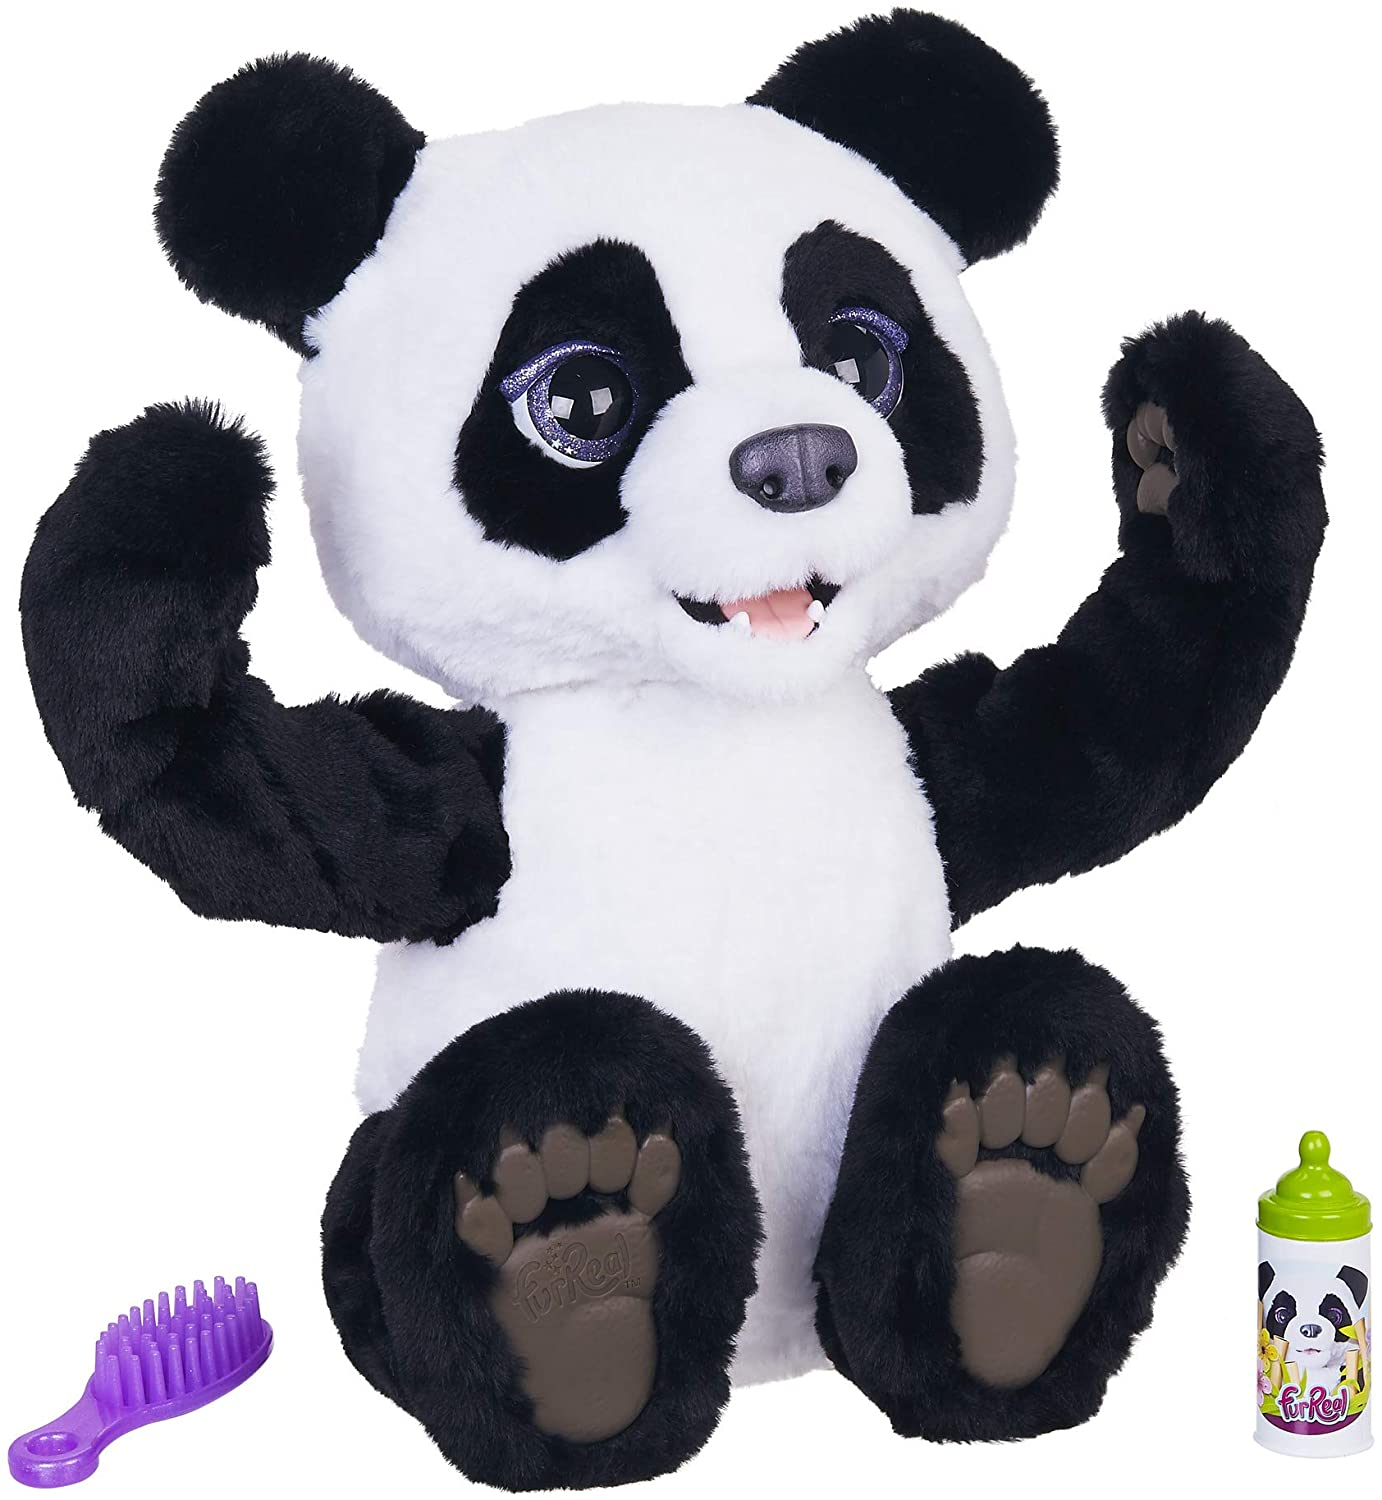 🔥50% OFF SALE🔥The Curious Panda Cub Interactive Plush Toy